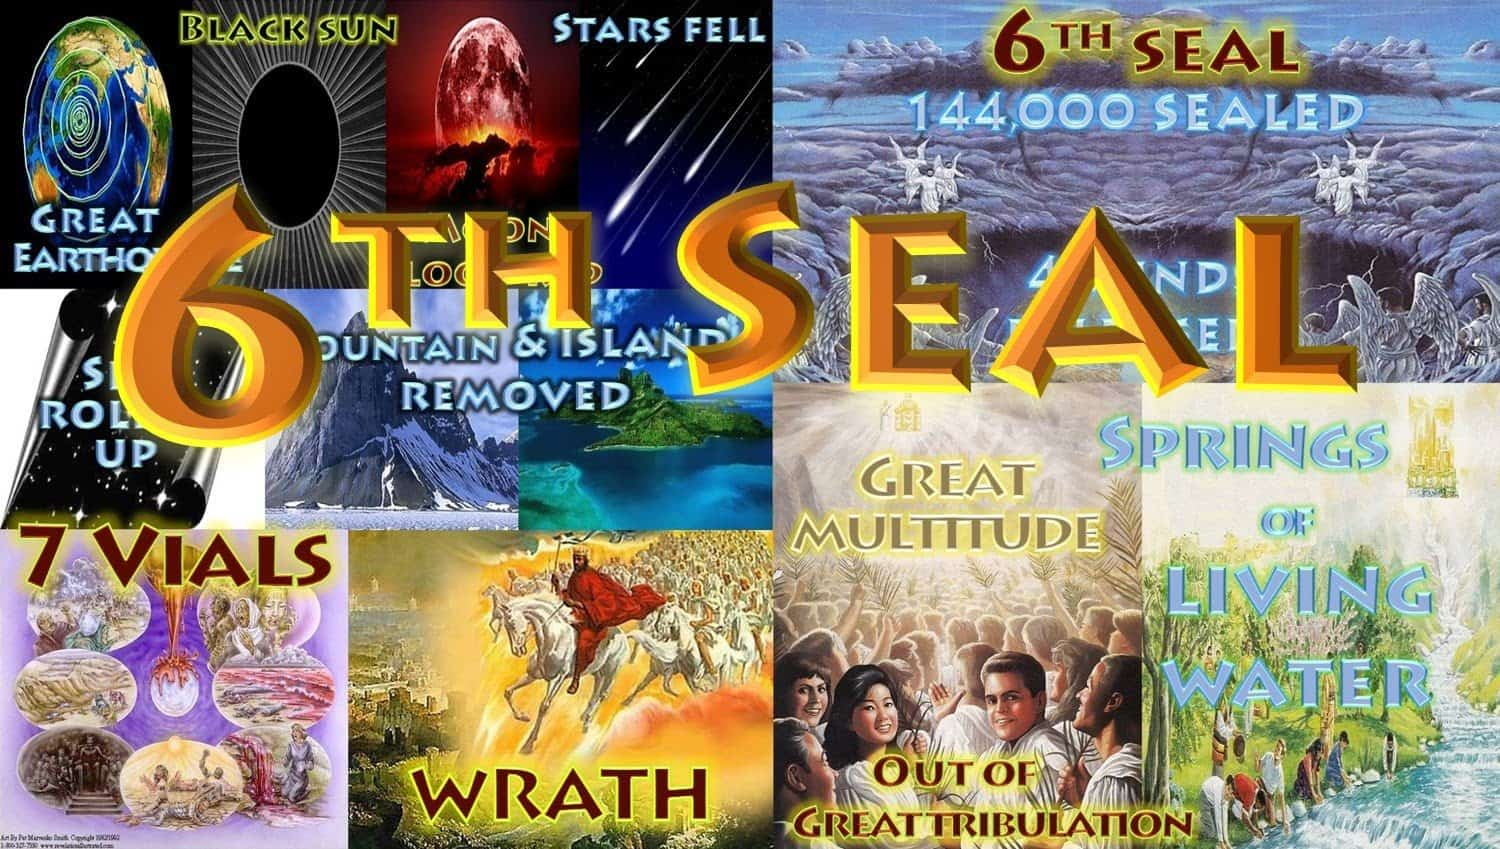 1000-year-reign, 144000, 7-seals-of-revelation, 7-trumpets-of-revelation, 7-vials-of-revelation, affliction, apocalypse, bible-prophesy, book-of-revelation, booths, end-times, feast-of-attonement, feast-of-tabernacle, feast-of-trumpets, future, great-multitude, great-tribulation, judgment, last-days, millennium, revelation-of-jesus-christ, river-of-water-of-life, salvation, seven-seals, seven-trumpets, seven-vials, sixth-seal, springs-of-living-water, wrath